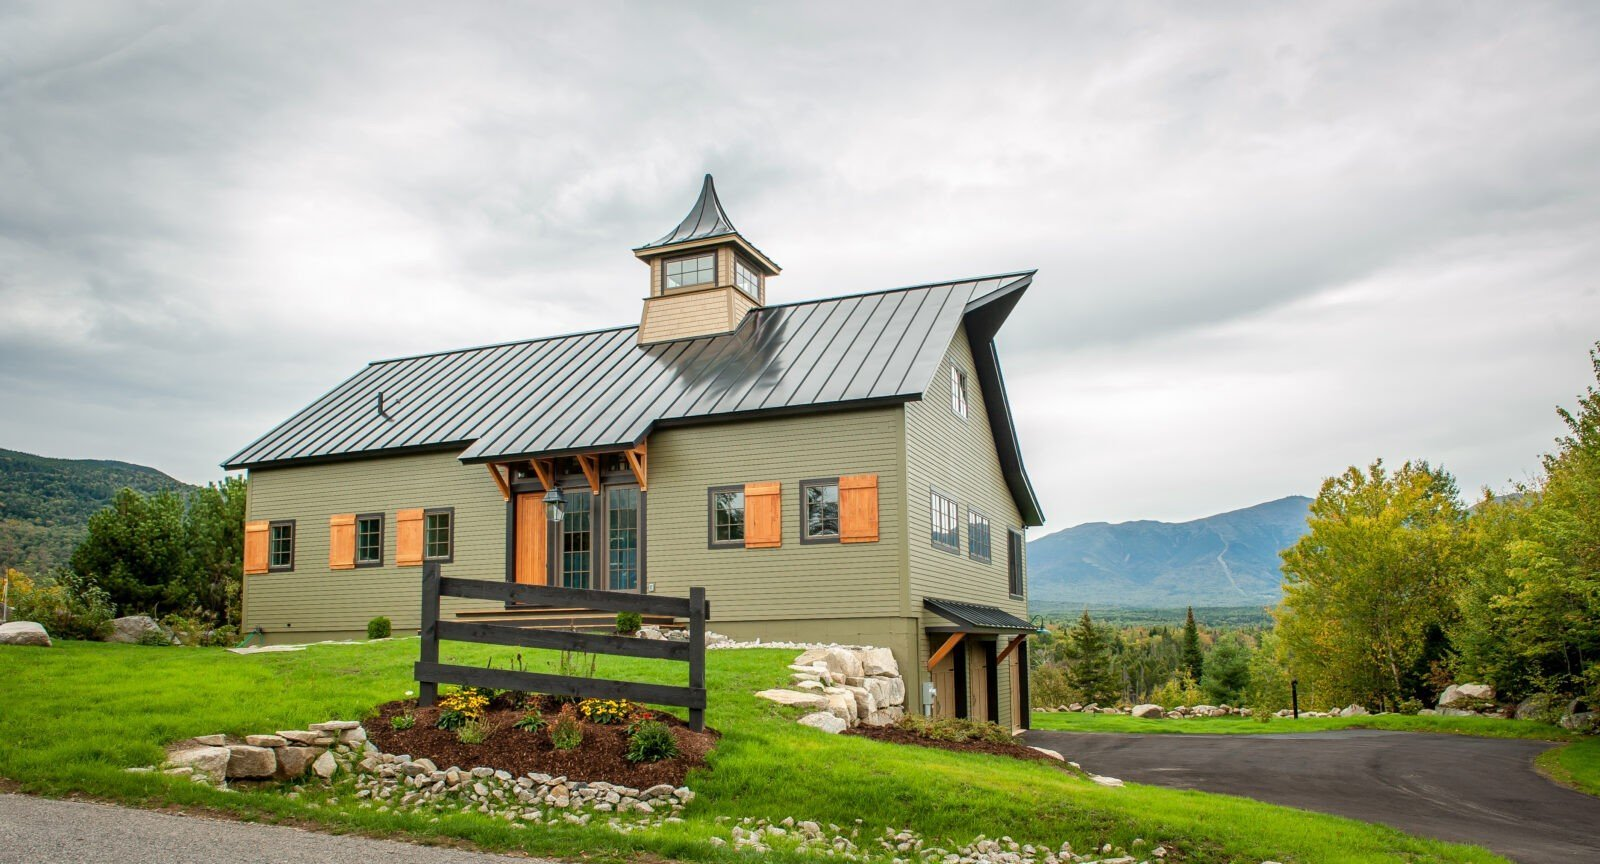 Top notch barn home plans from the ybh design team Barn designs